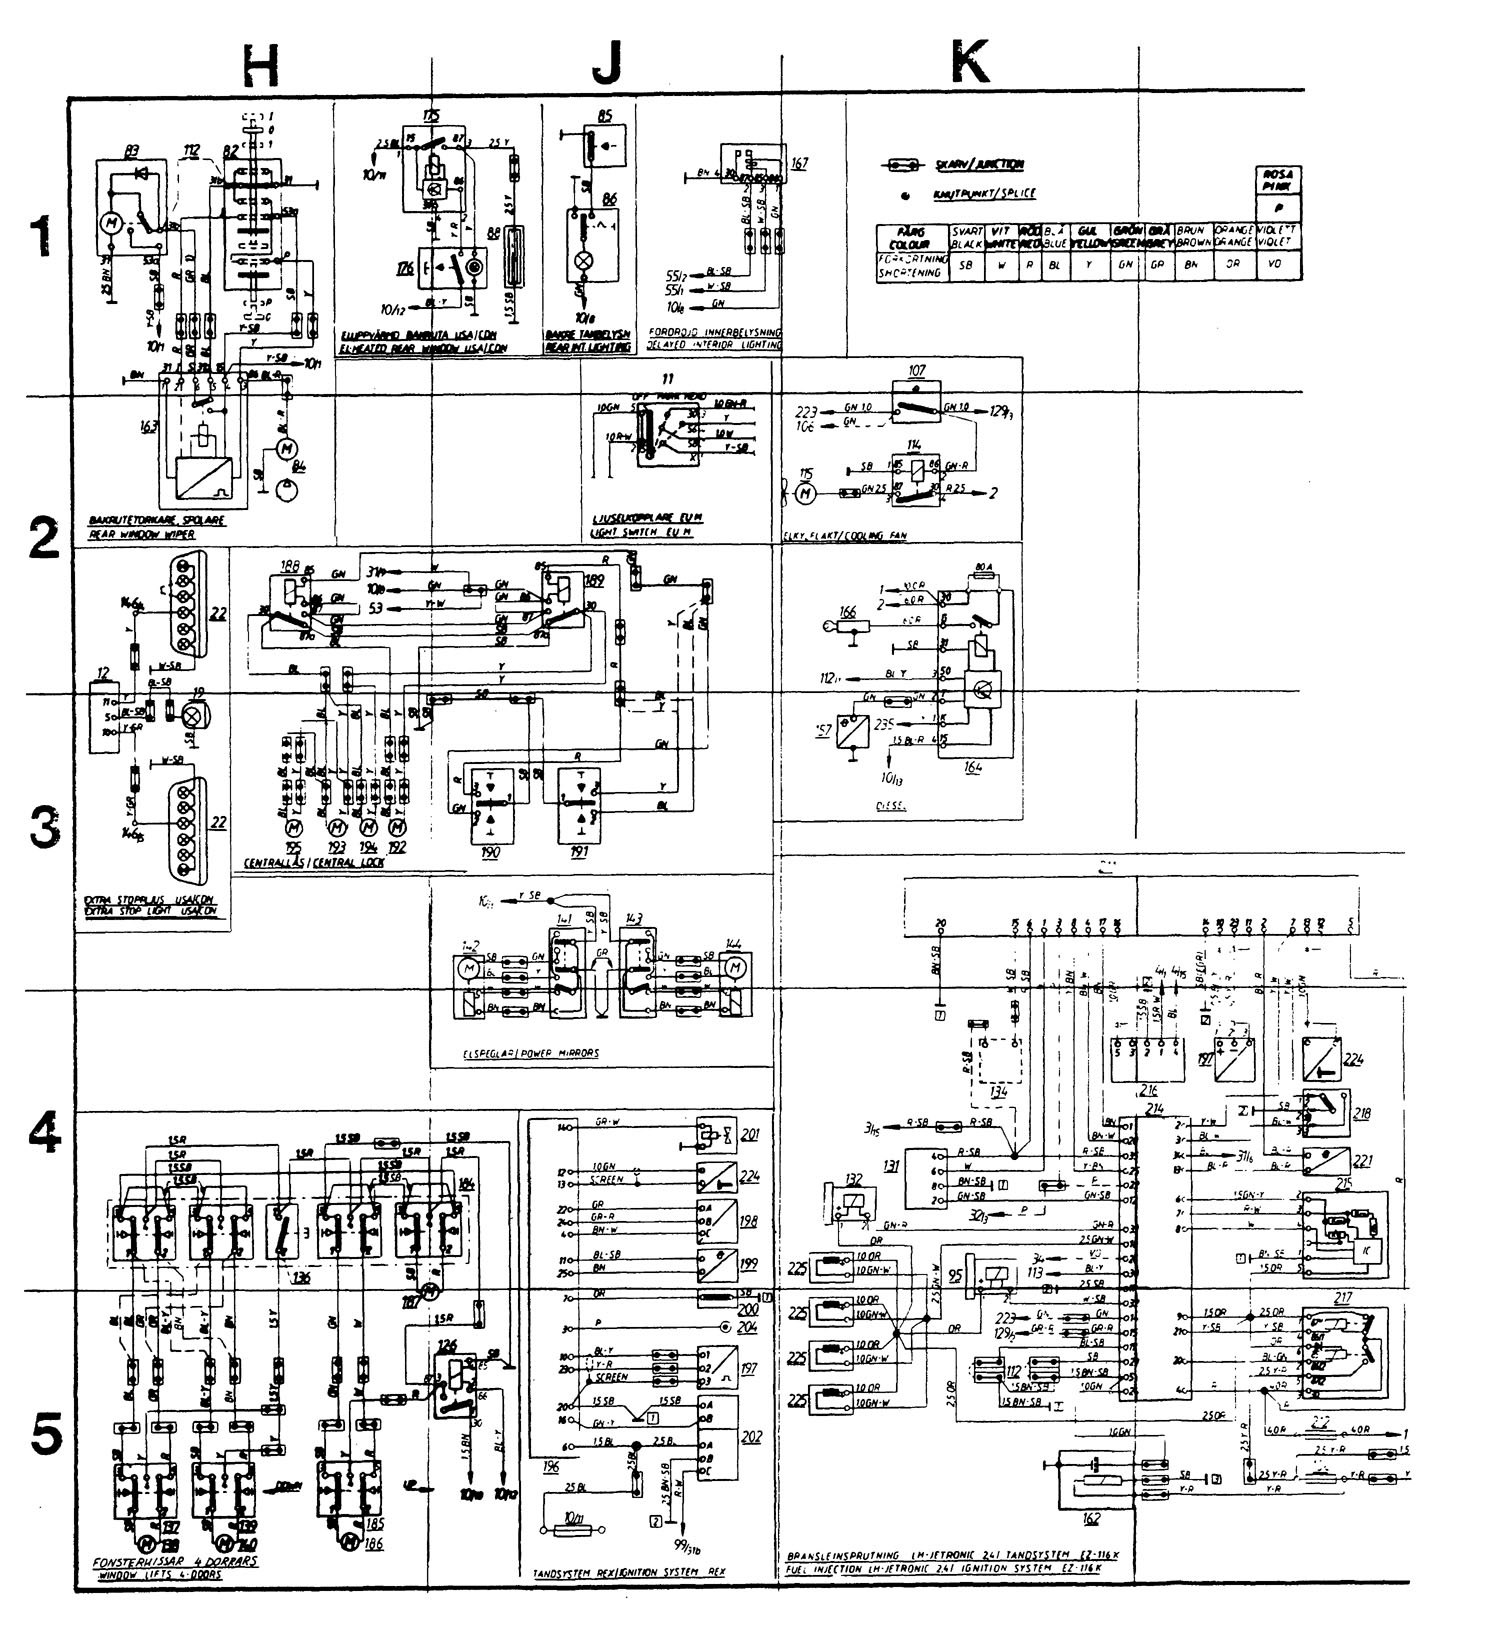 1989 Wellcraft Wiring Diagram Schematic || Wiring Diagrams Home on